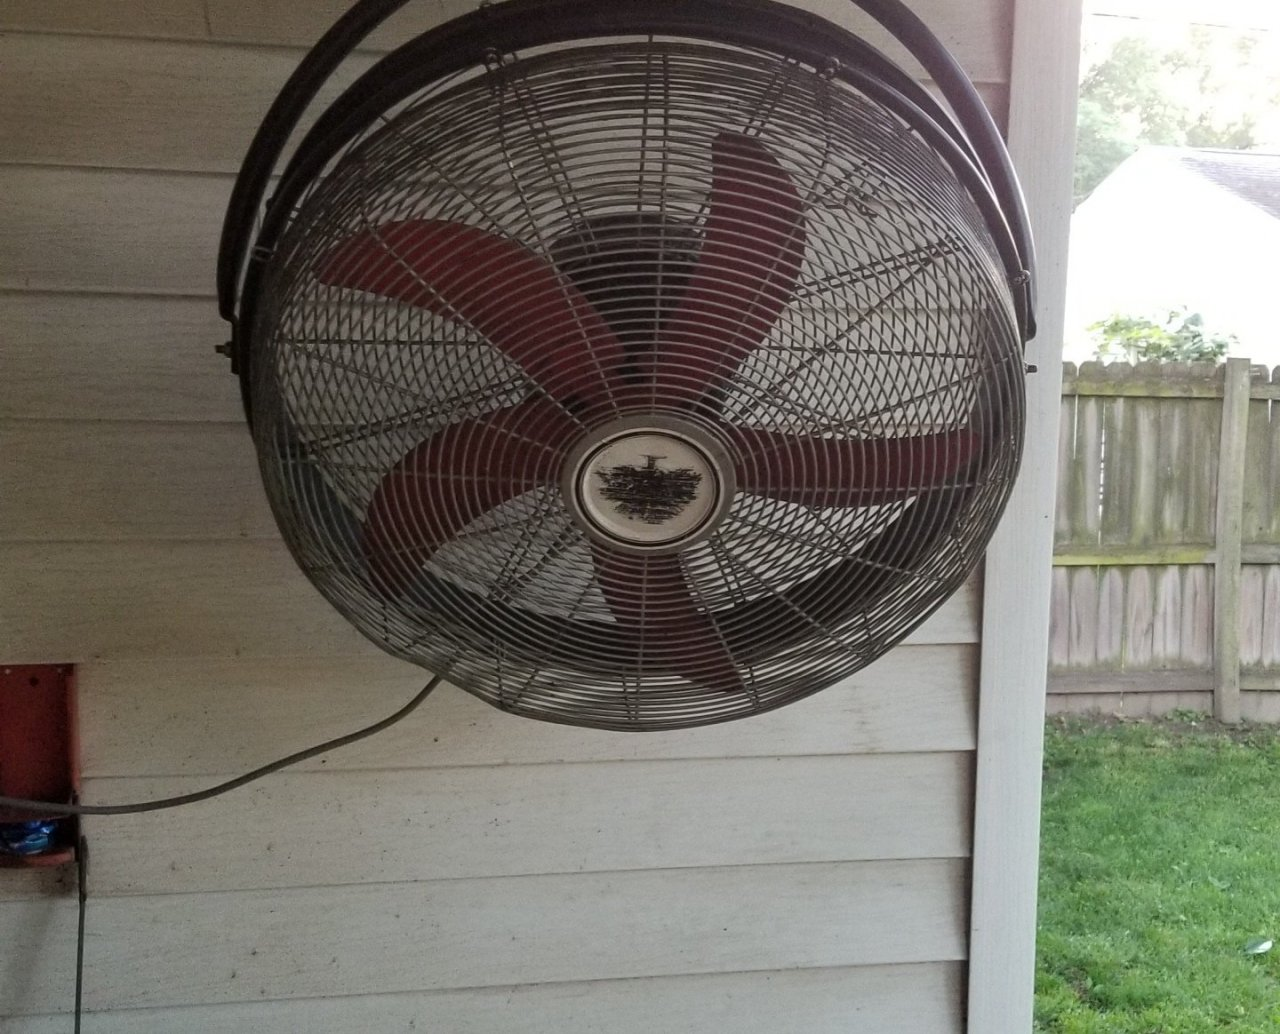 Fan Motor Burnt Out Trying To Find A Good Replacement | DIY Forums